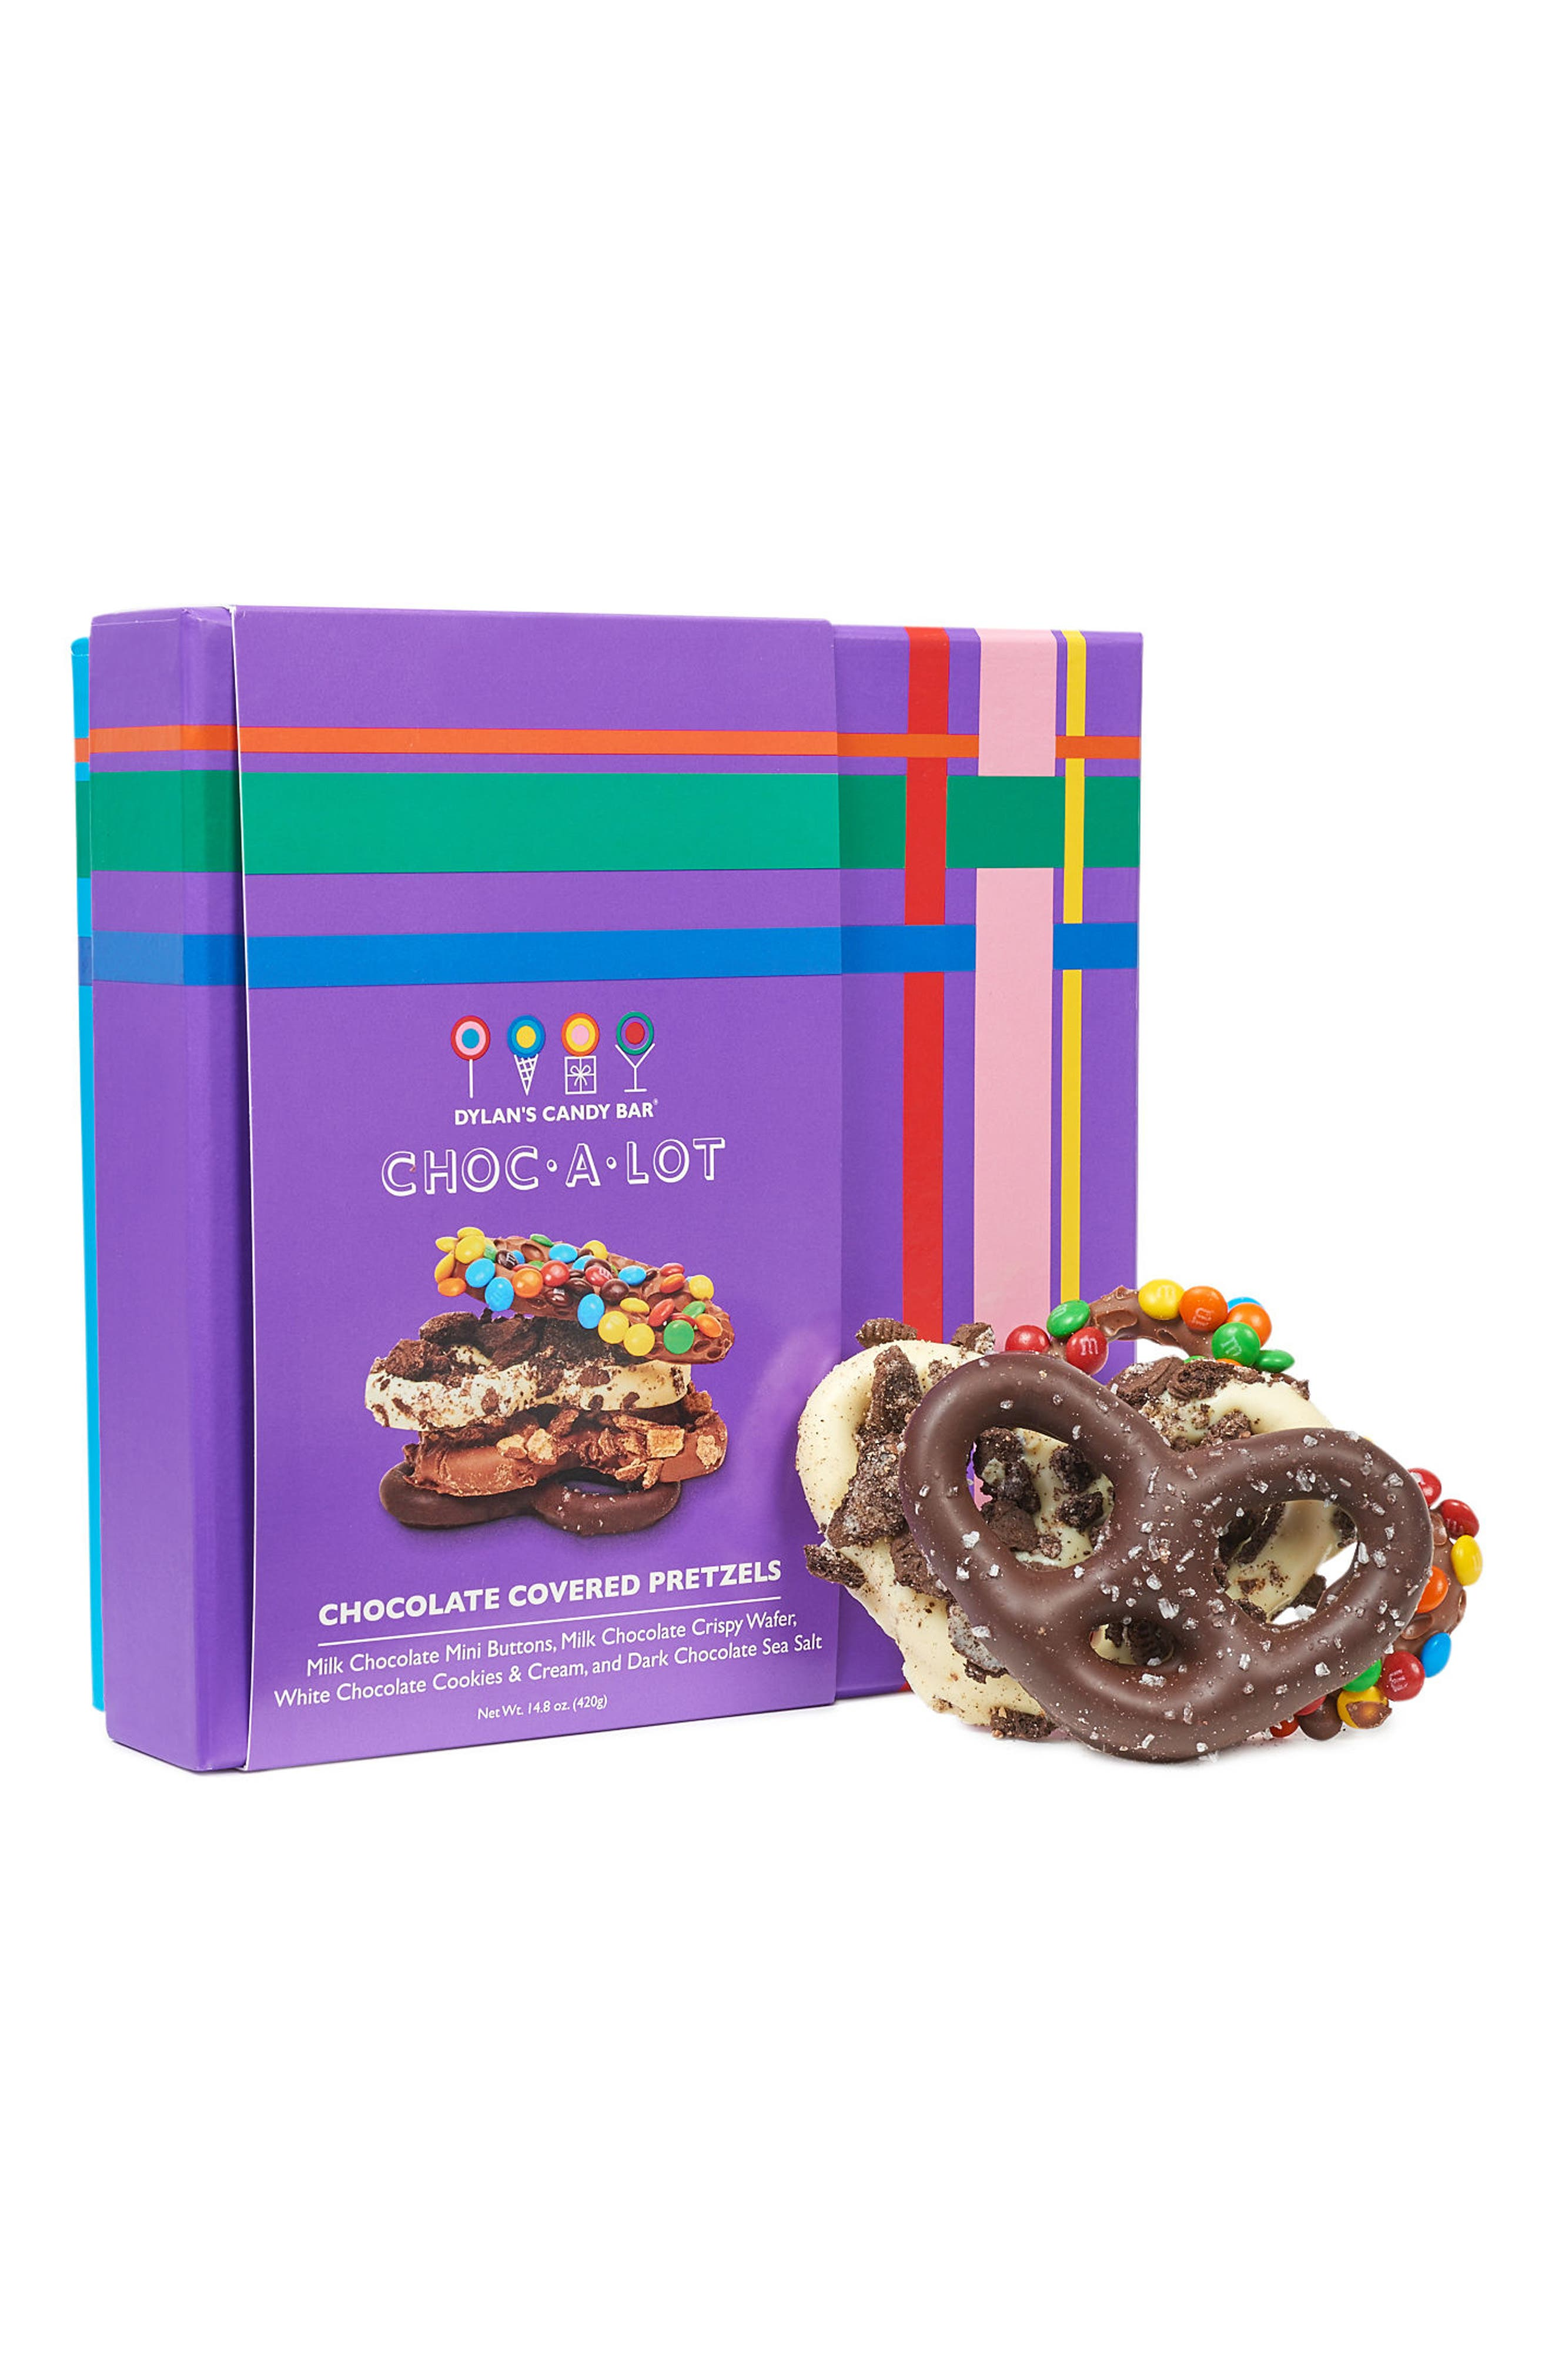 DYLAN'S CANDY BAR Choc-A-Lot Chocolate Covered Pretzels, Main, color, PURPLE